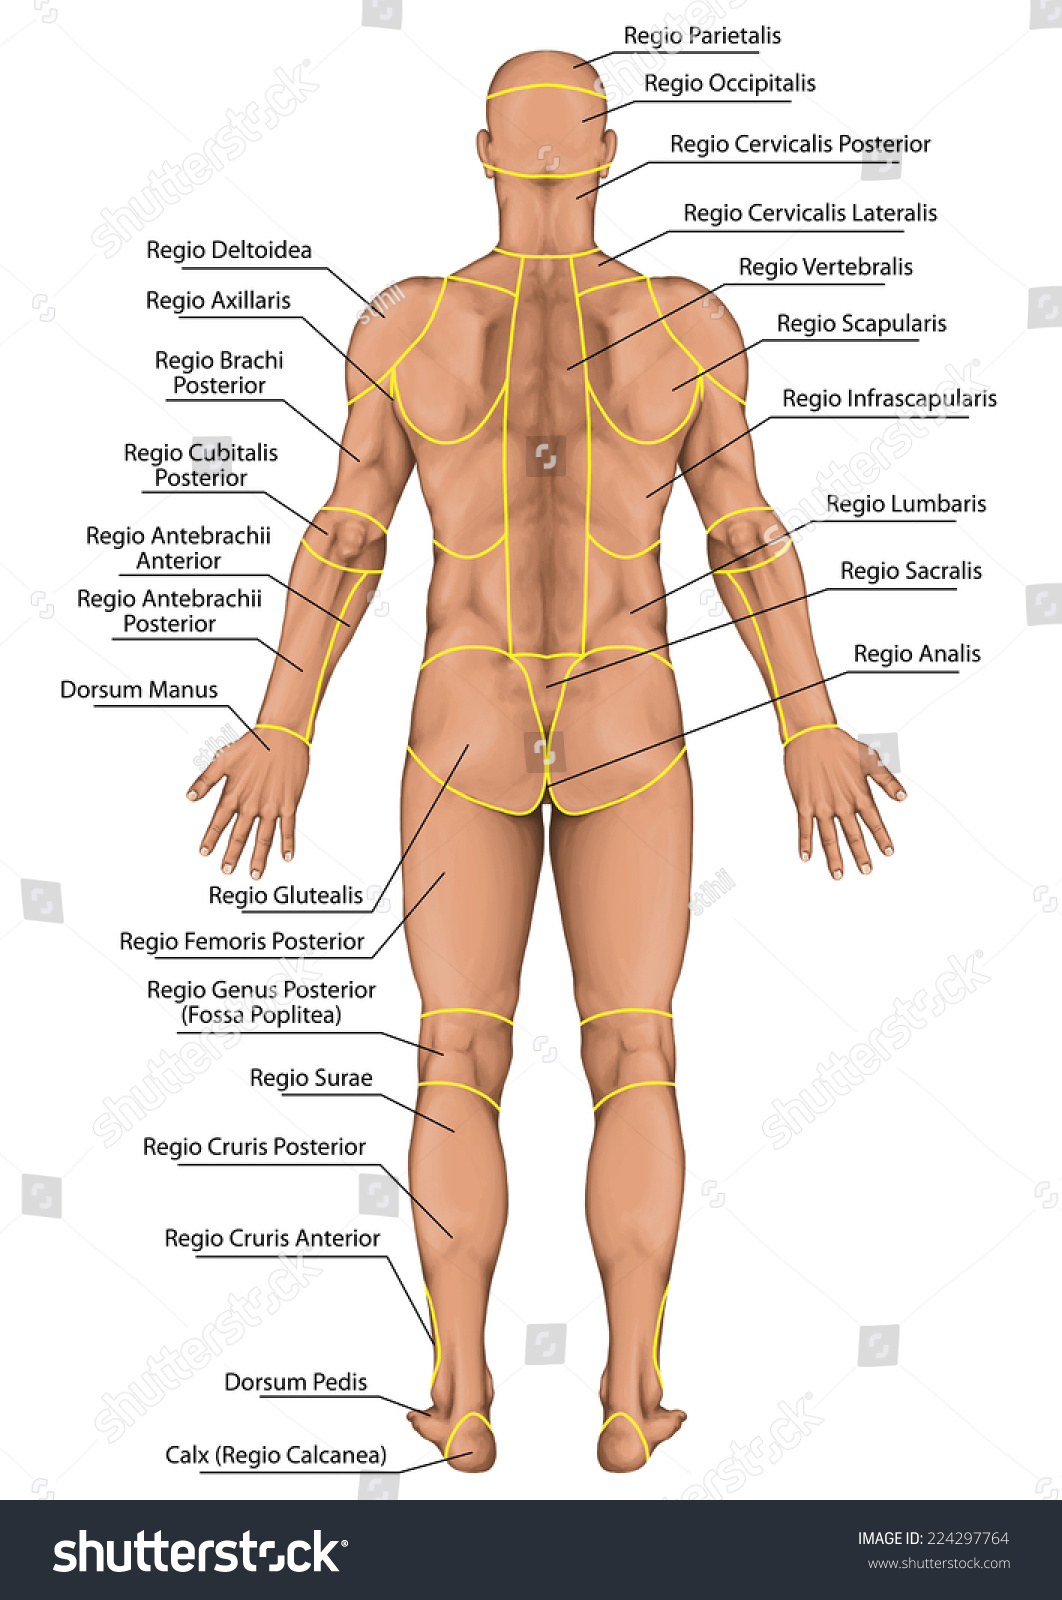 Royalty Free Stock Illustration of Anatomical Board Region Human ...